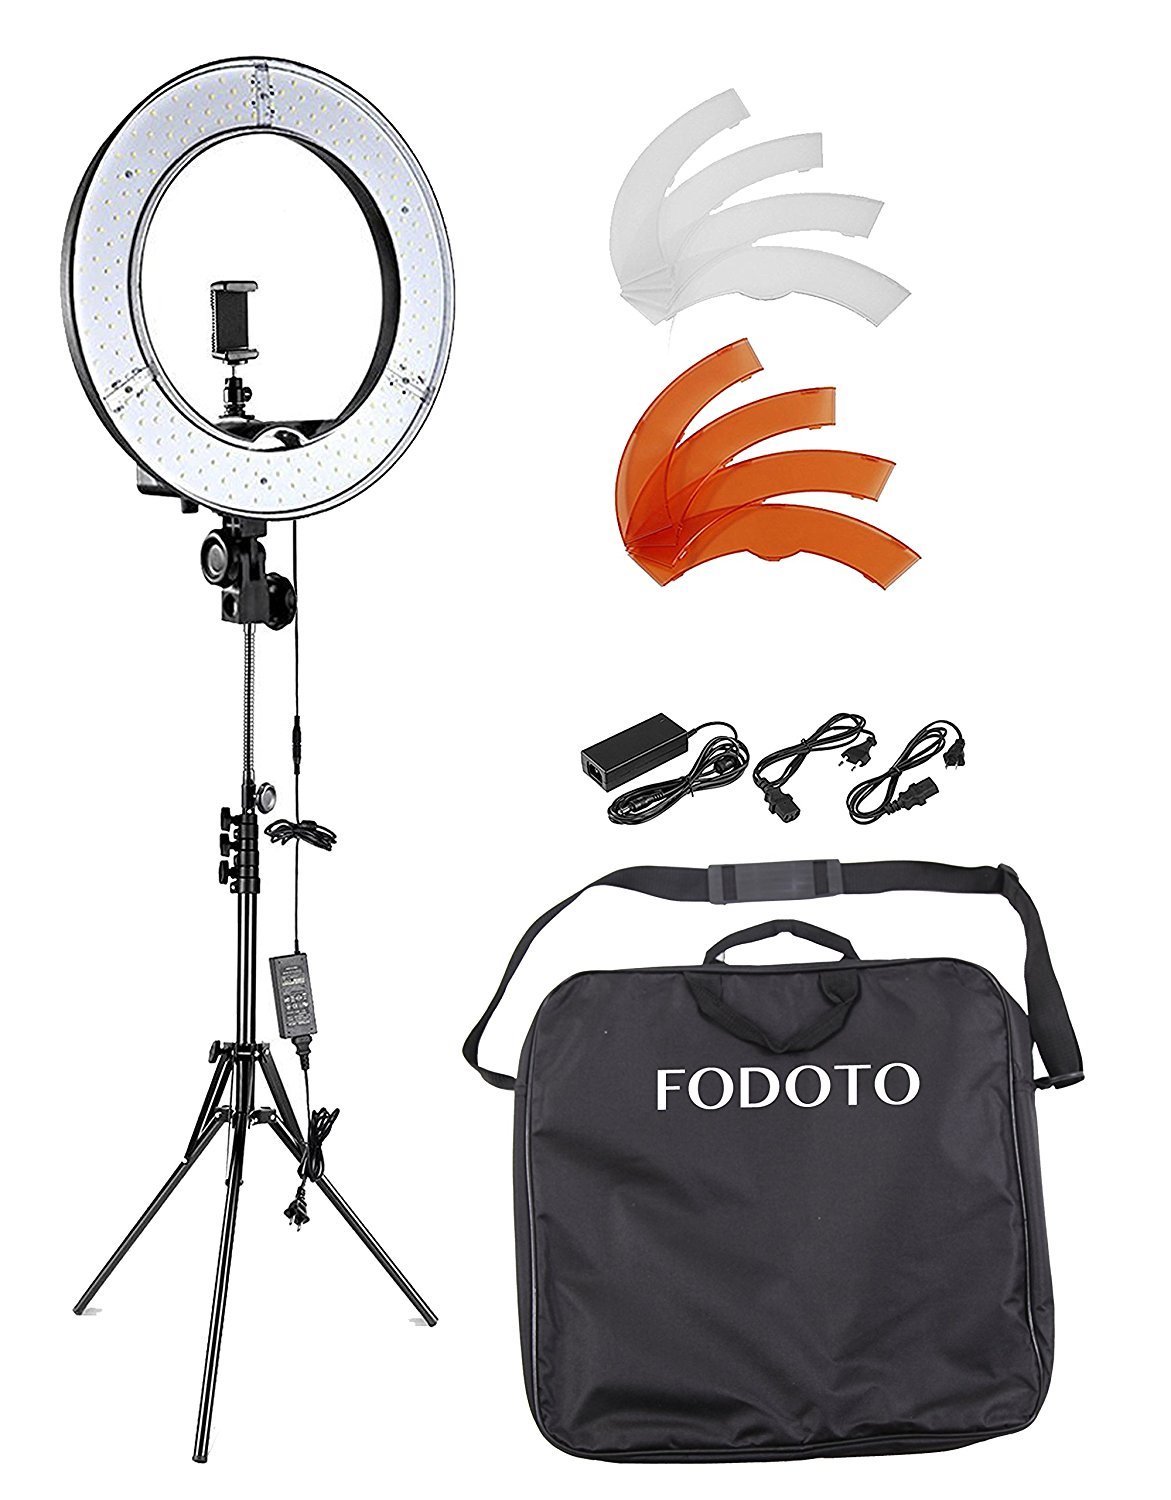 Fodoto 13 inch LED Diva Ring Light 1800w Photo Video Softbox Continuous Lighting Kit